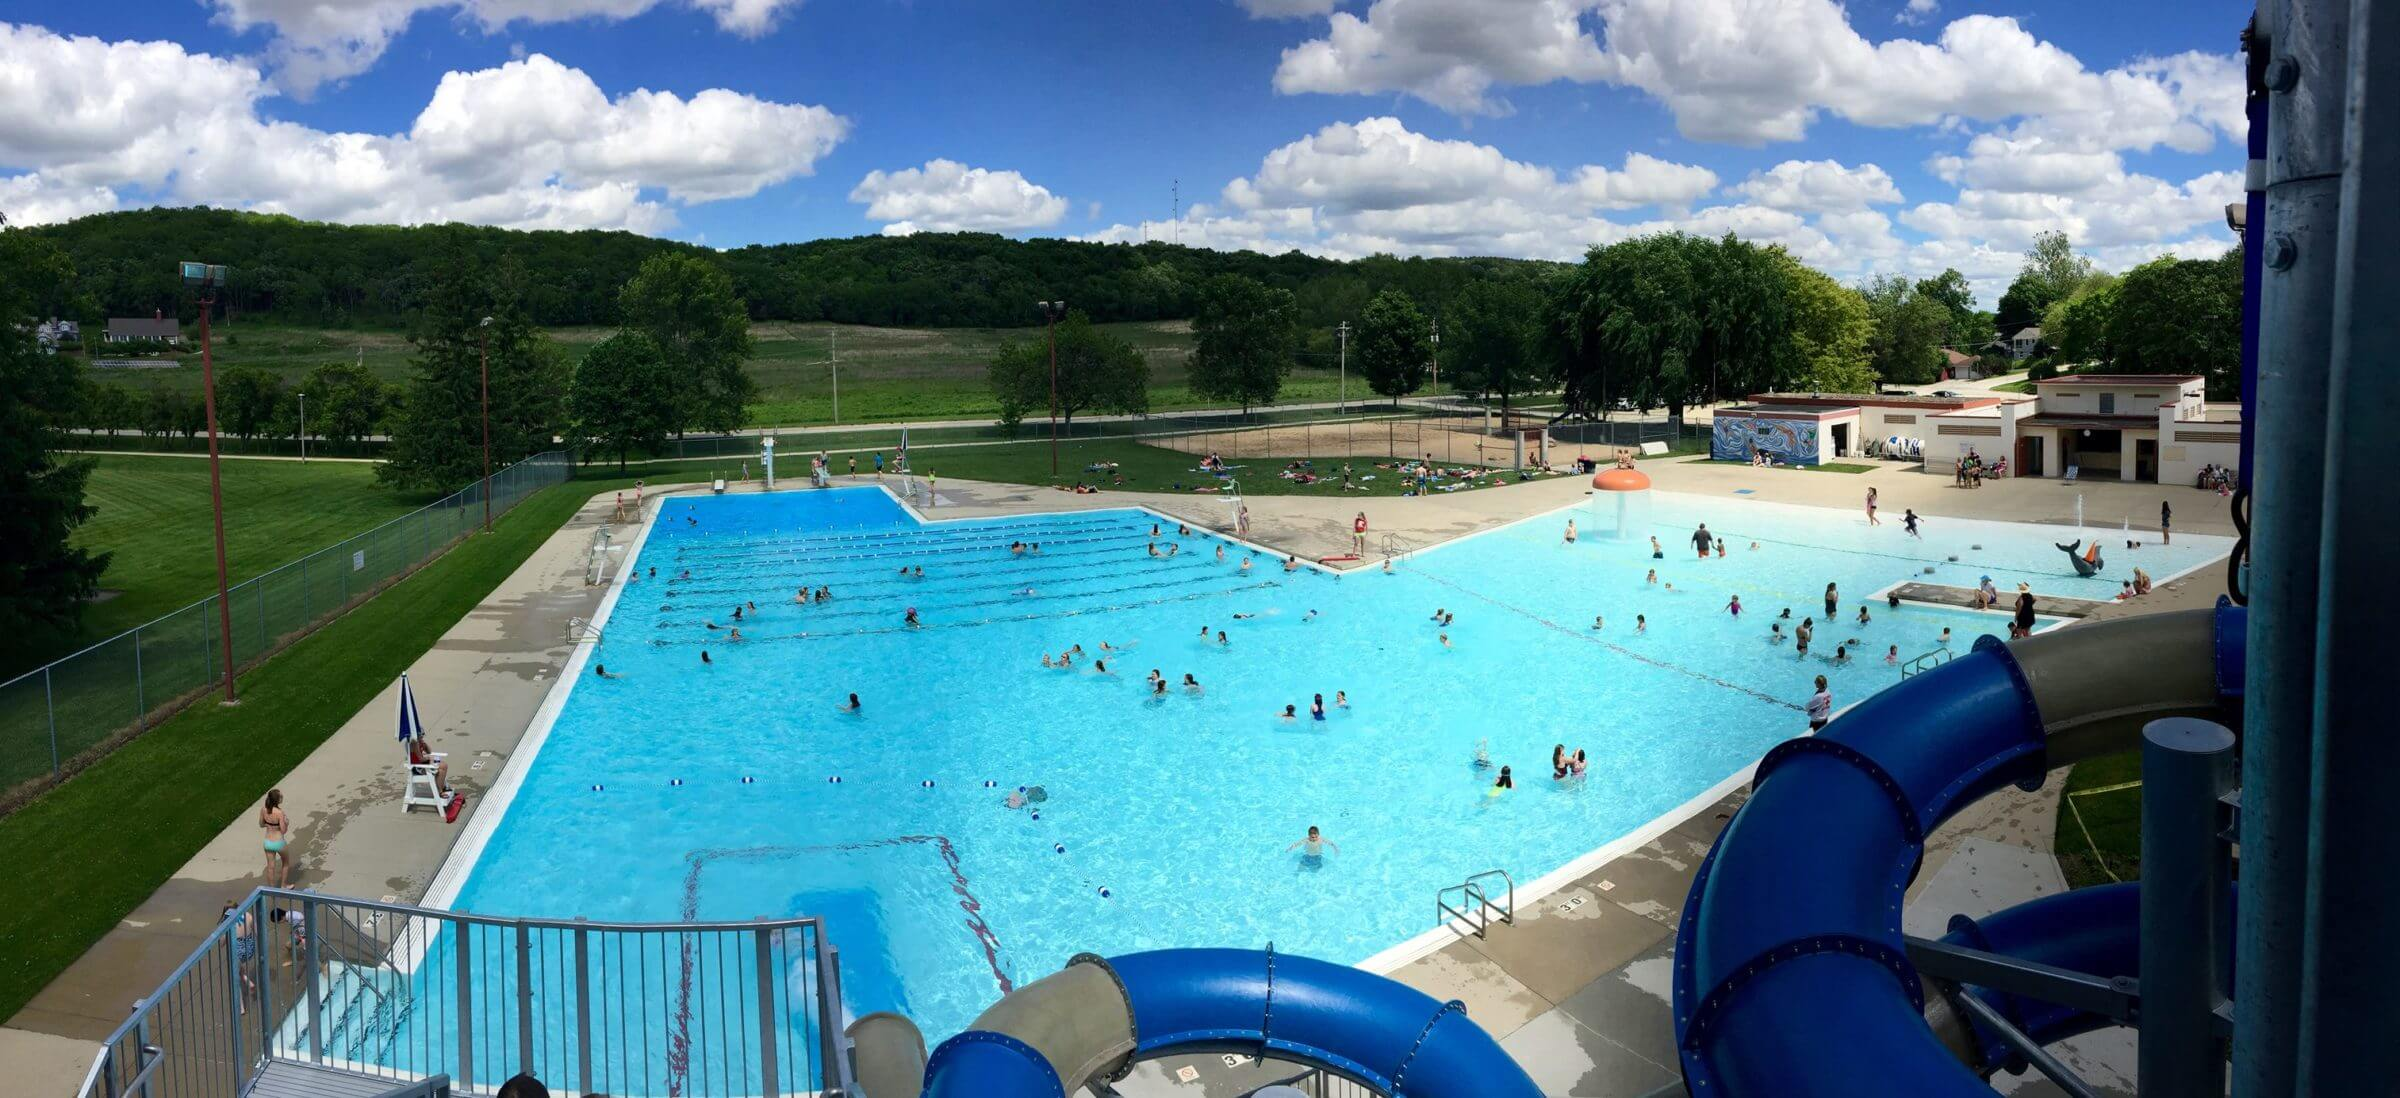 Panoramic view of the swimming pool from the top of the water slide.